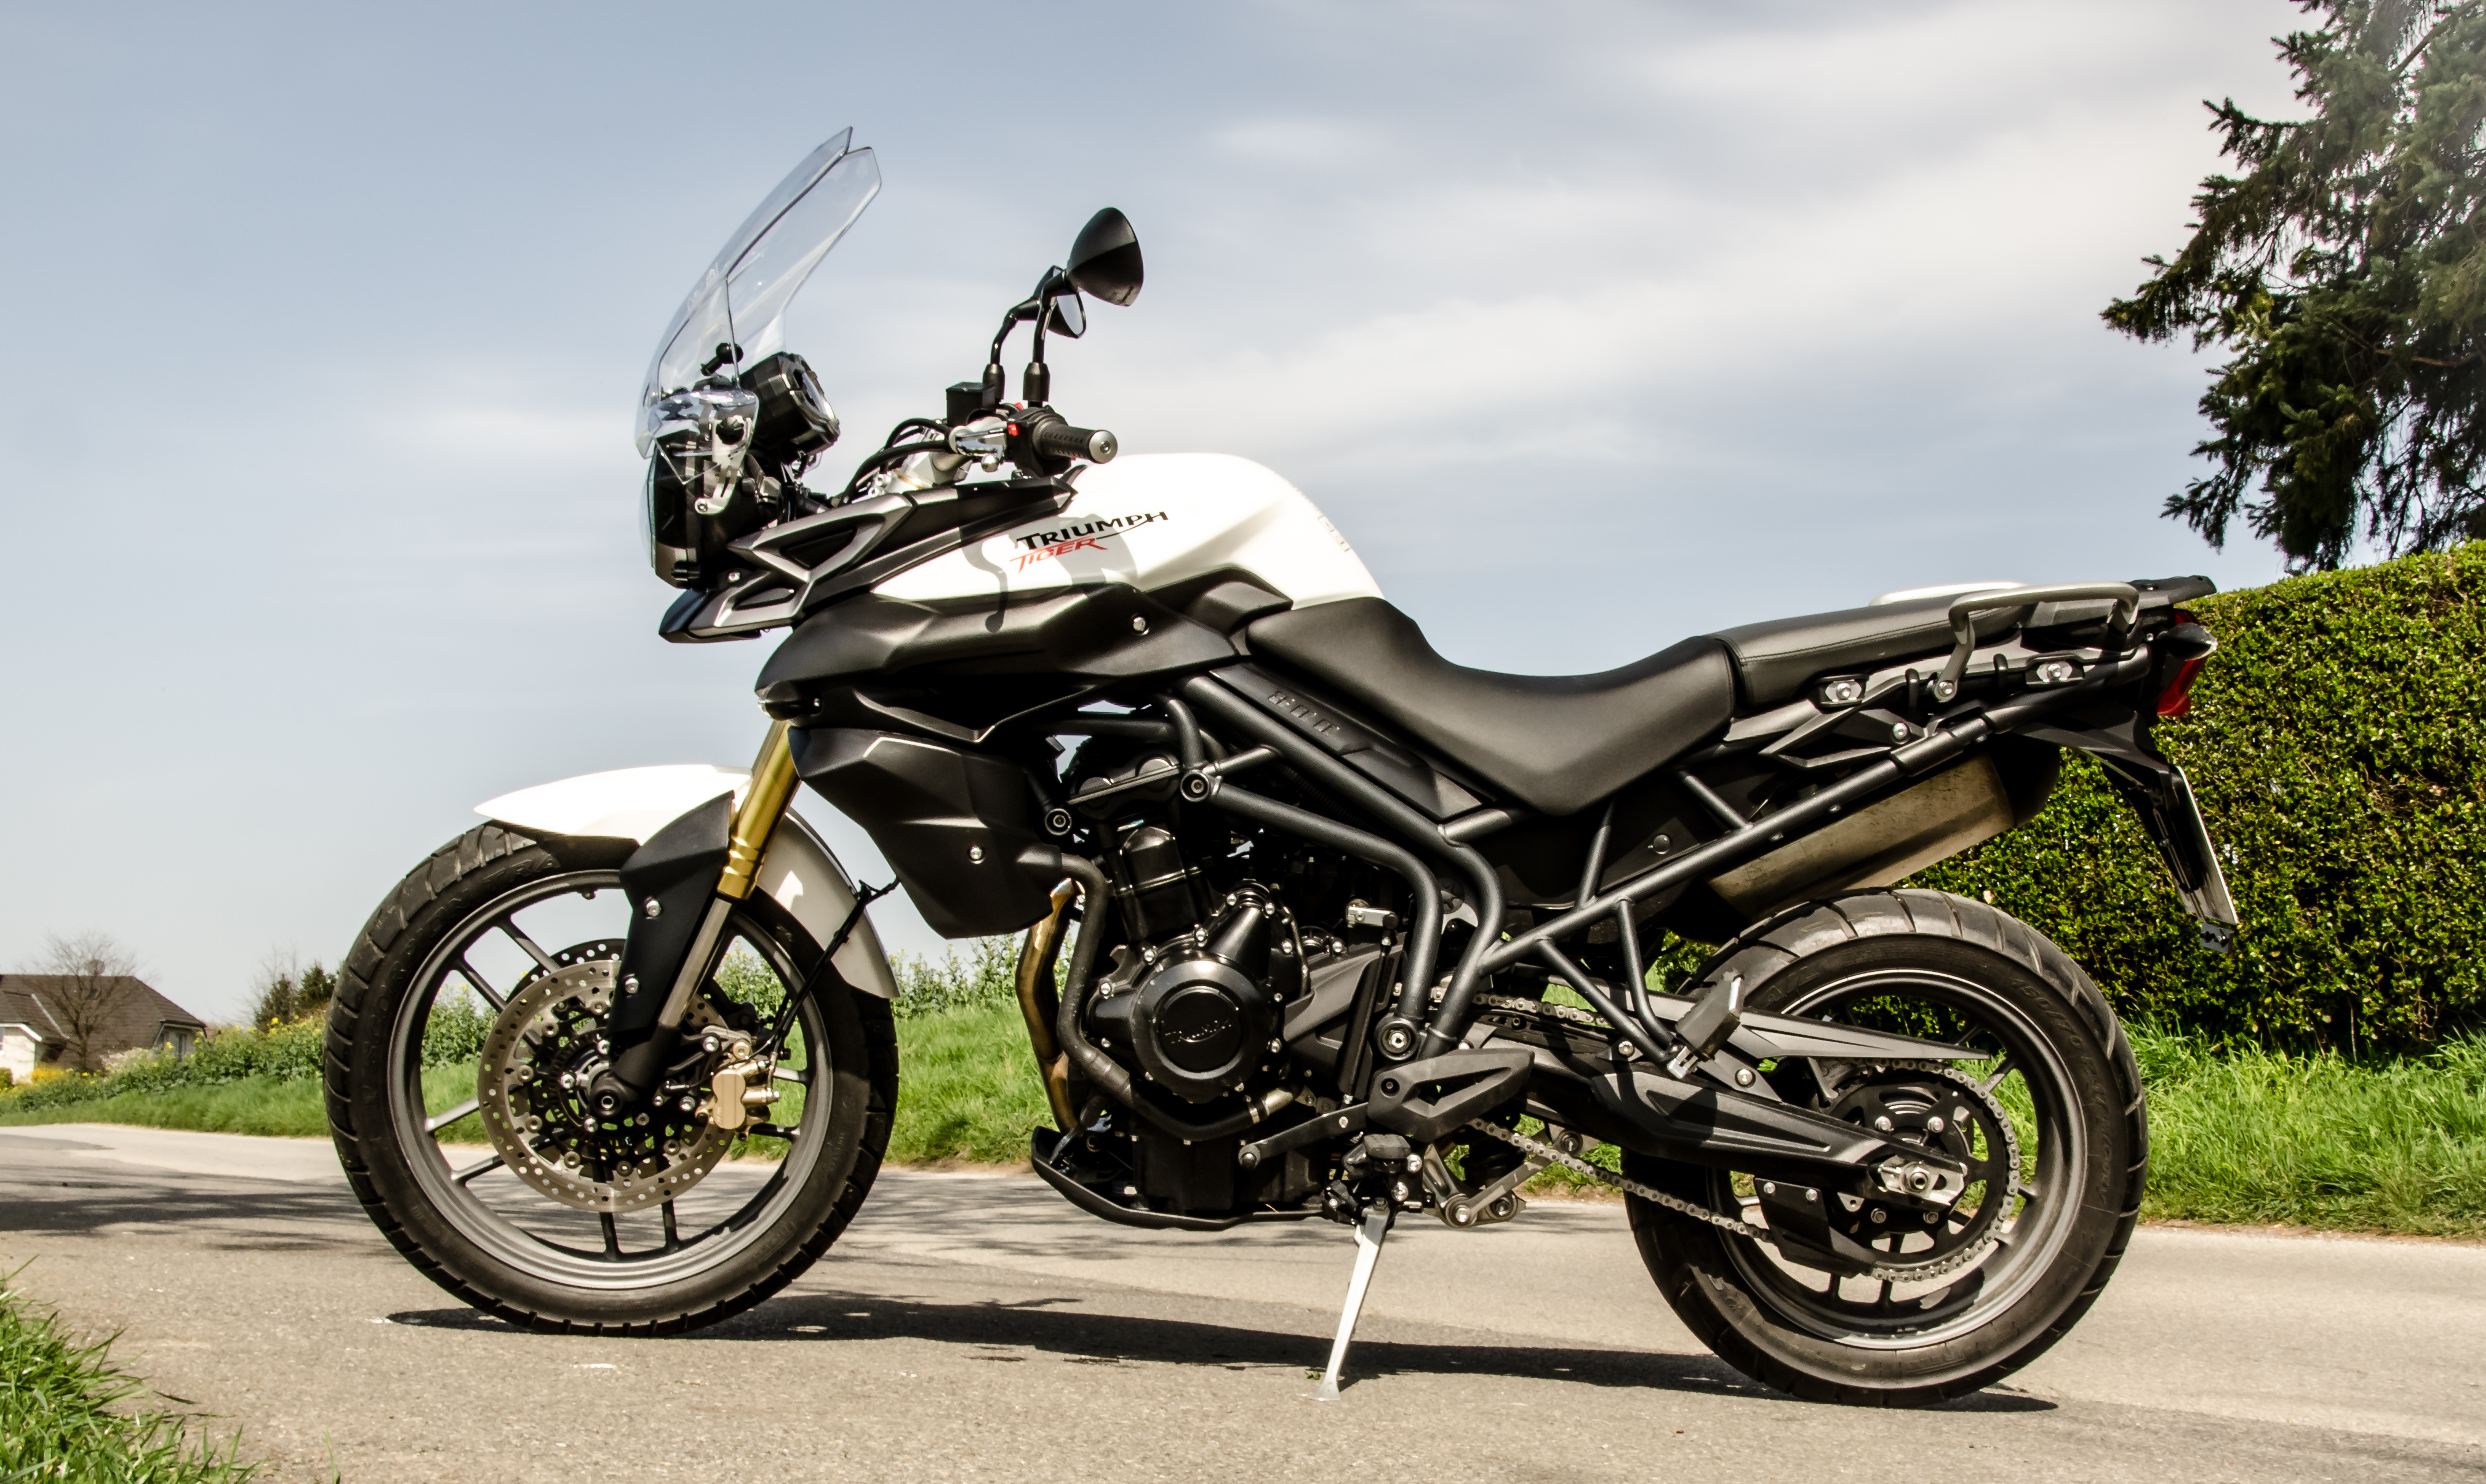 File:Triumph Tiger 800 MY 2012 side view.jpg - Wikimedia Commons